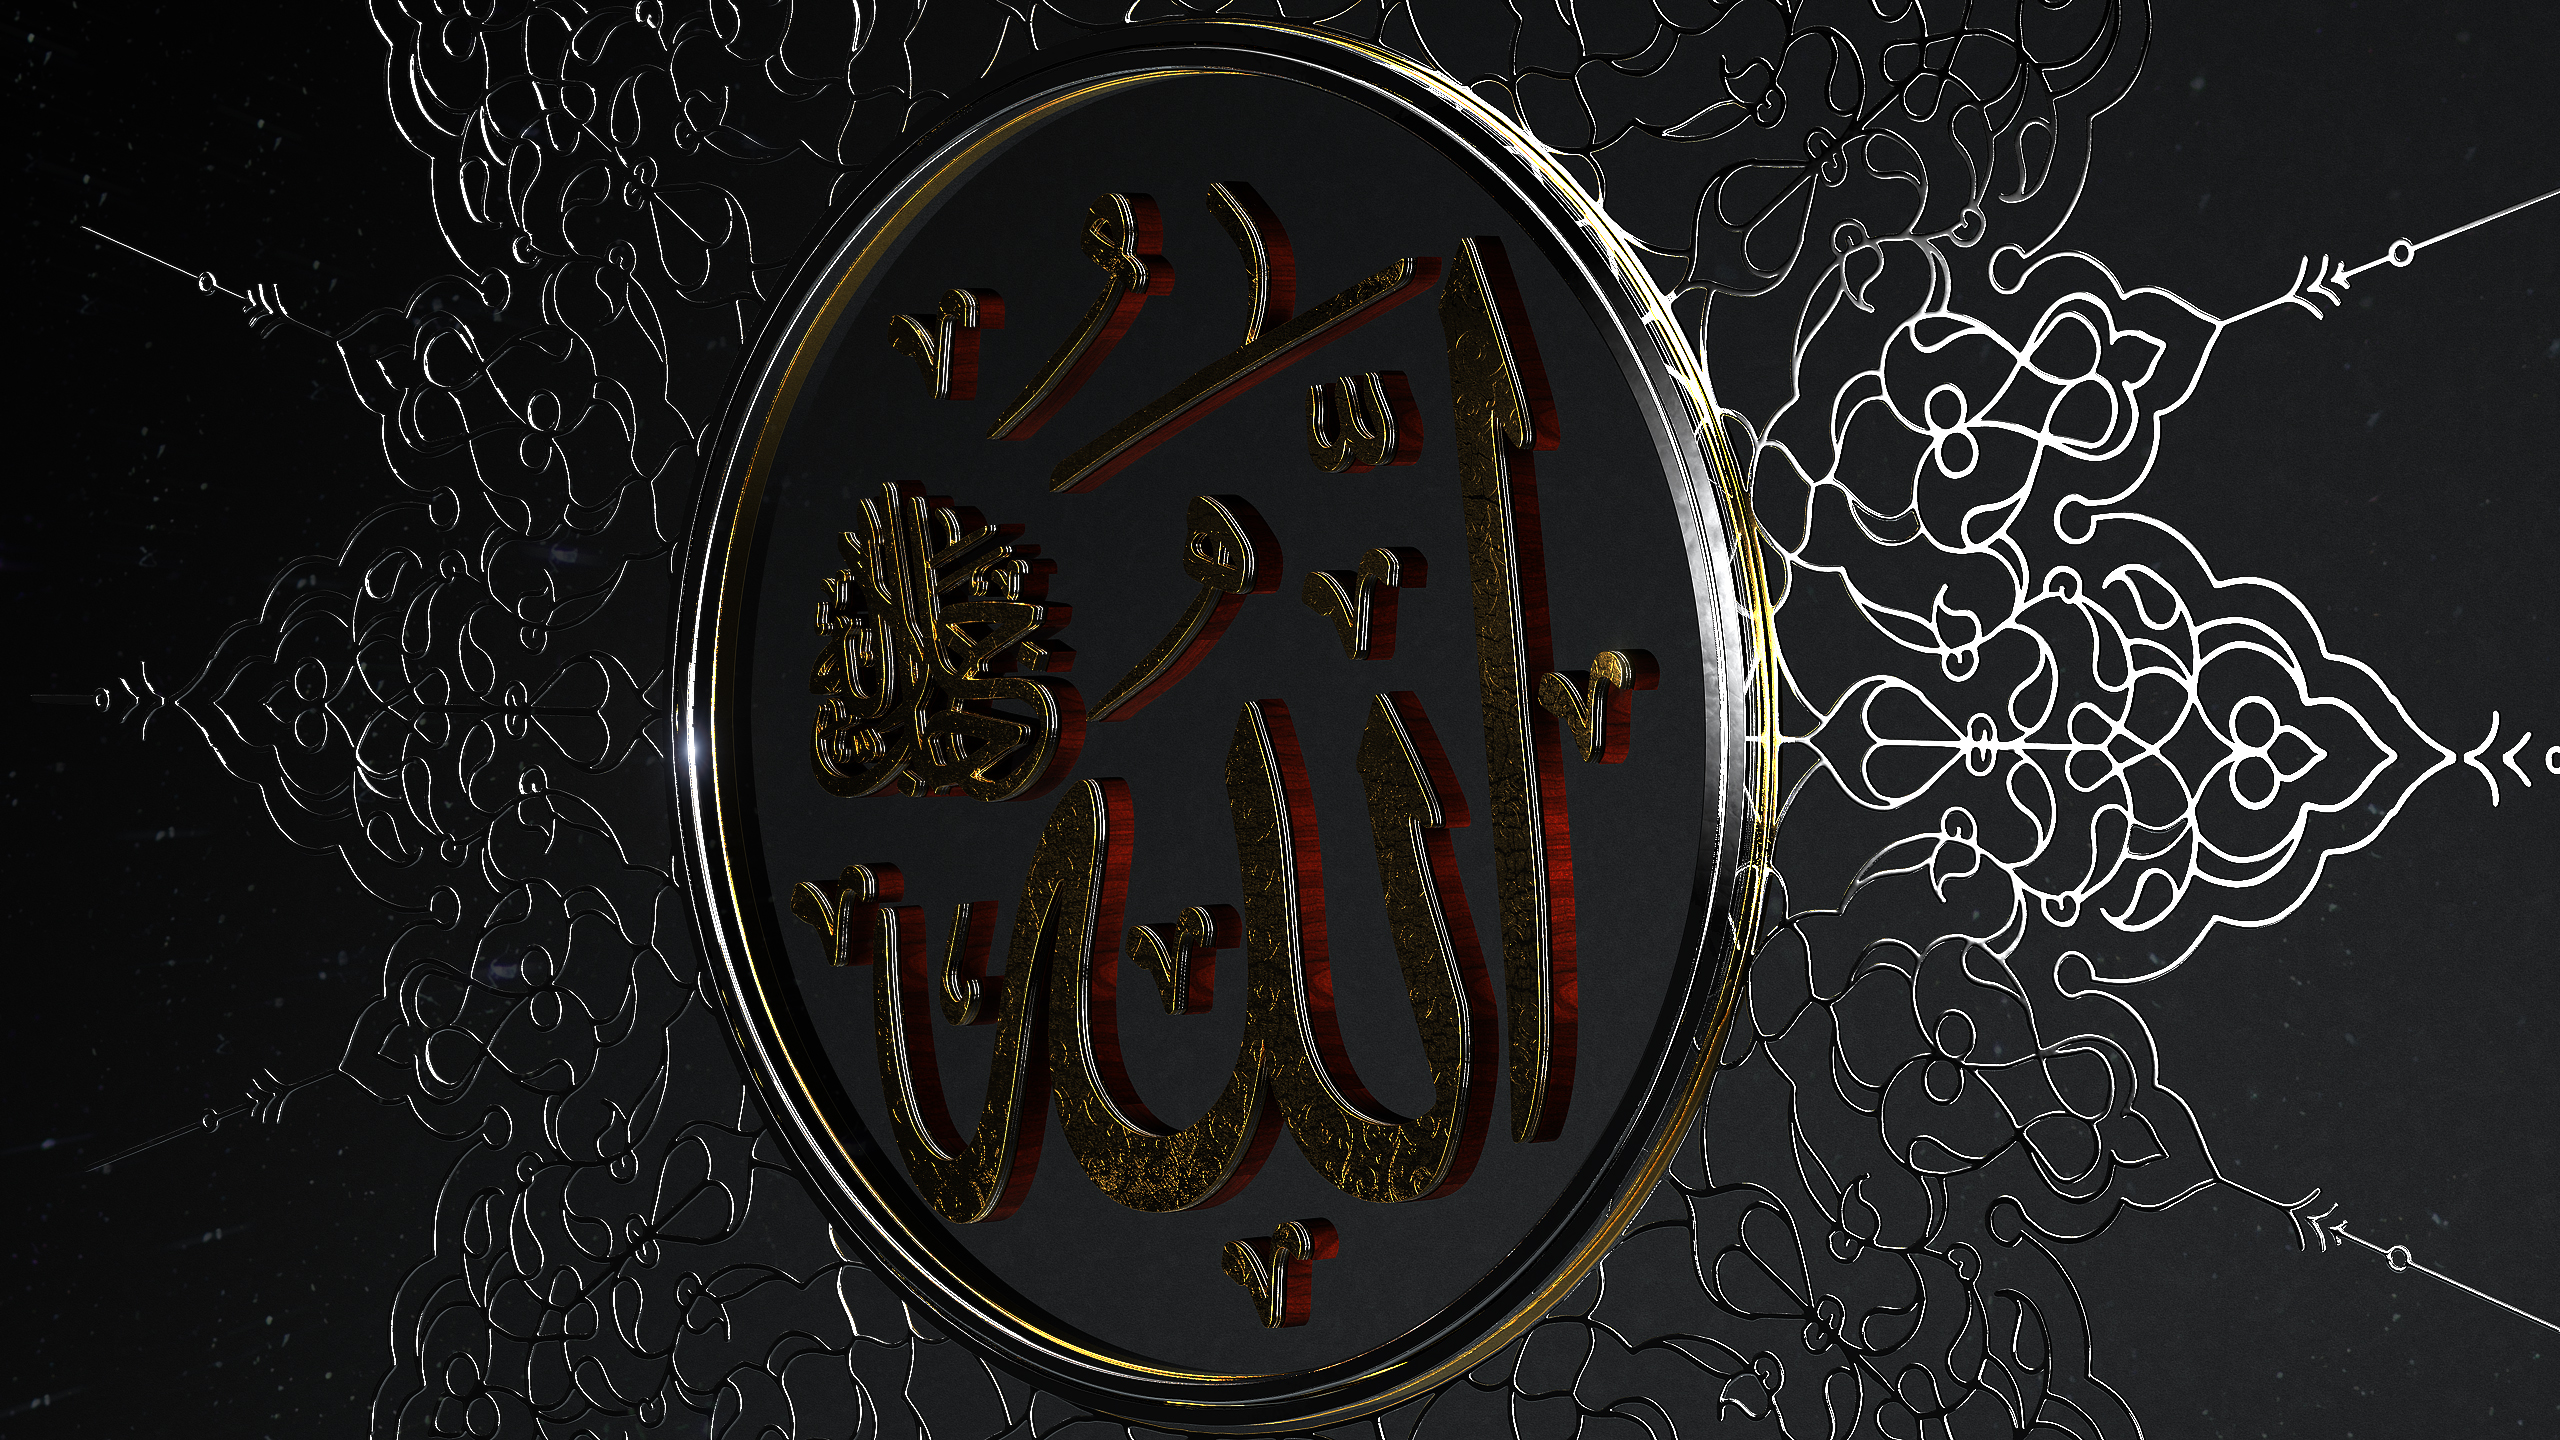 3d Islamic Calligraphy By Iskander71 On Deviantart